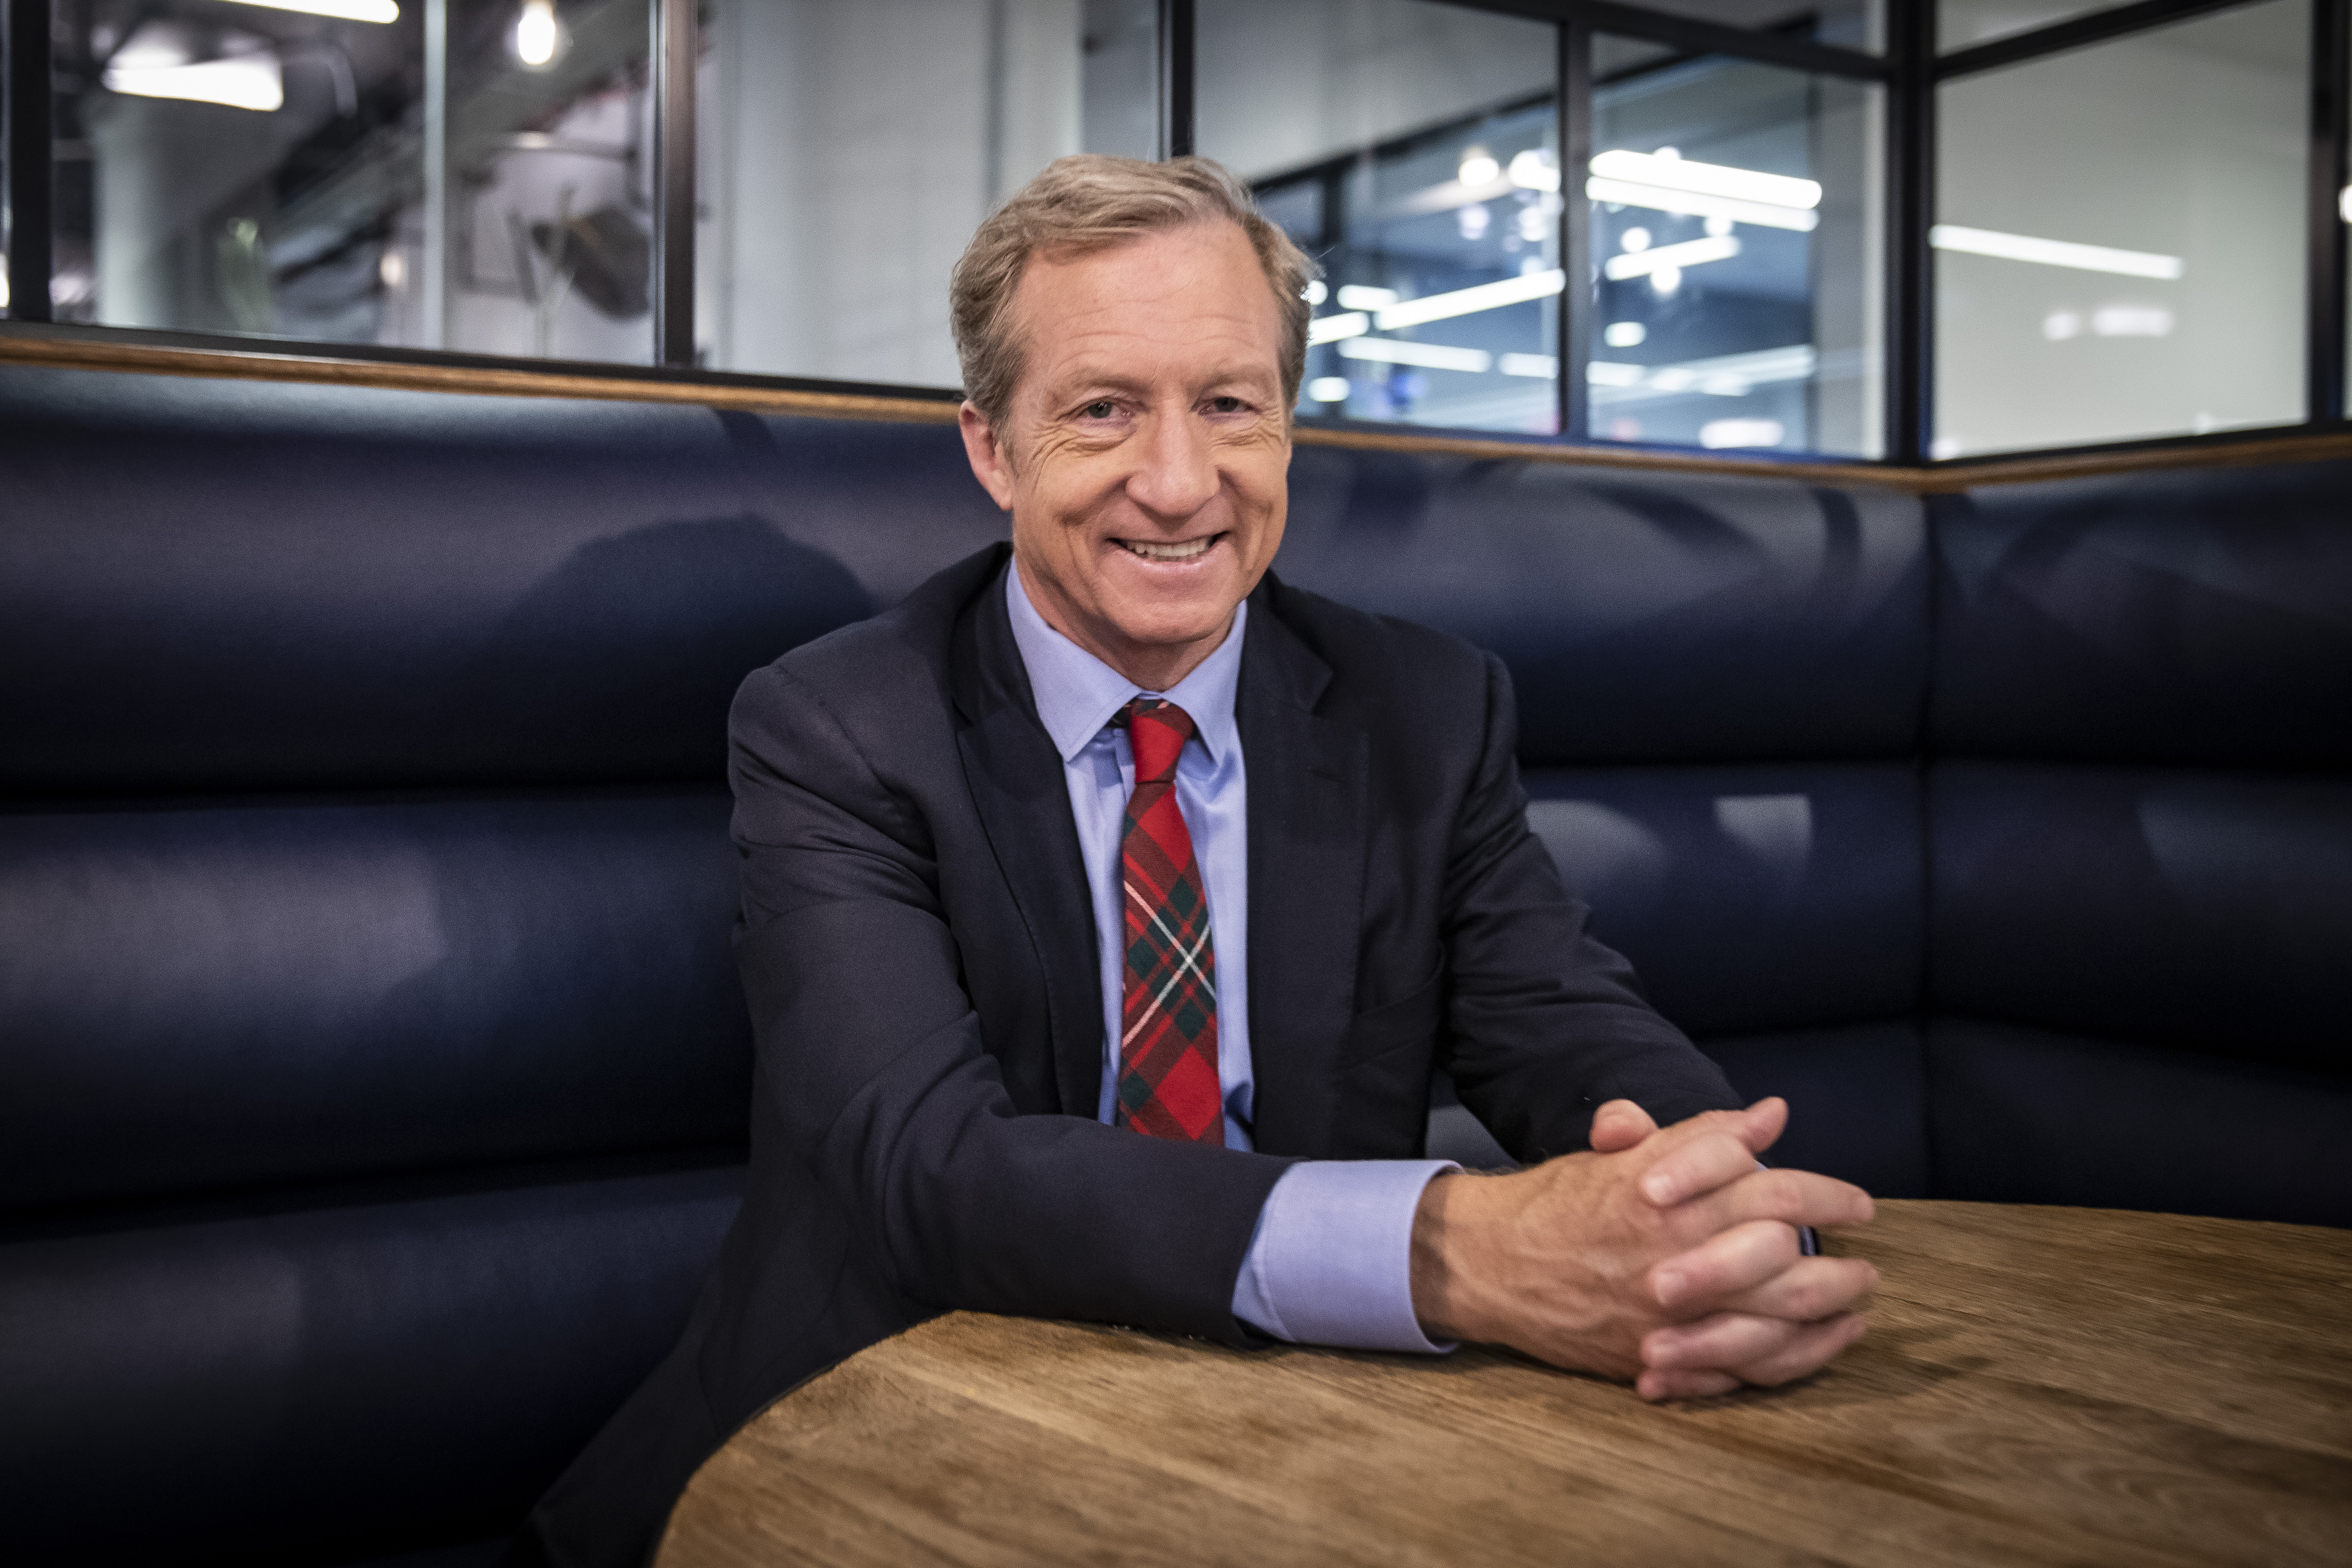 Democratic candidate Tom Steyer backs rival Joe Biden around impeachment inquiry, says he should be left out of this